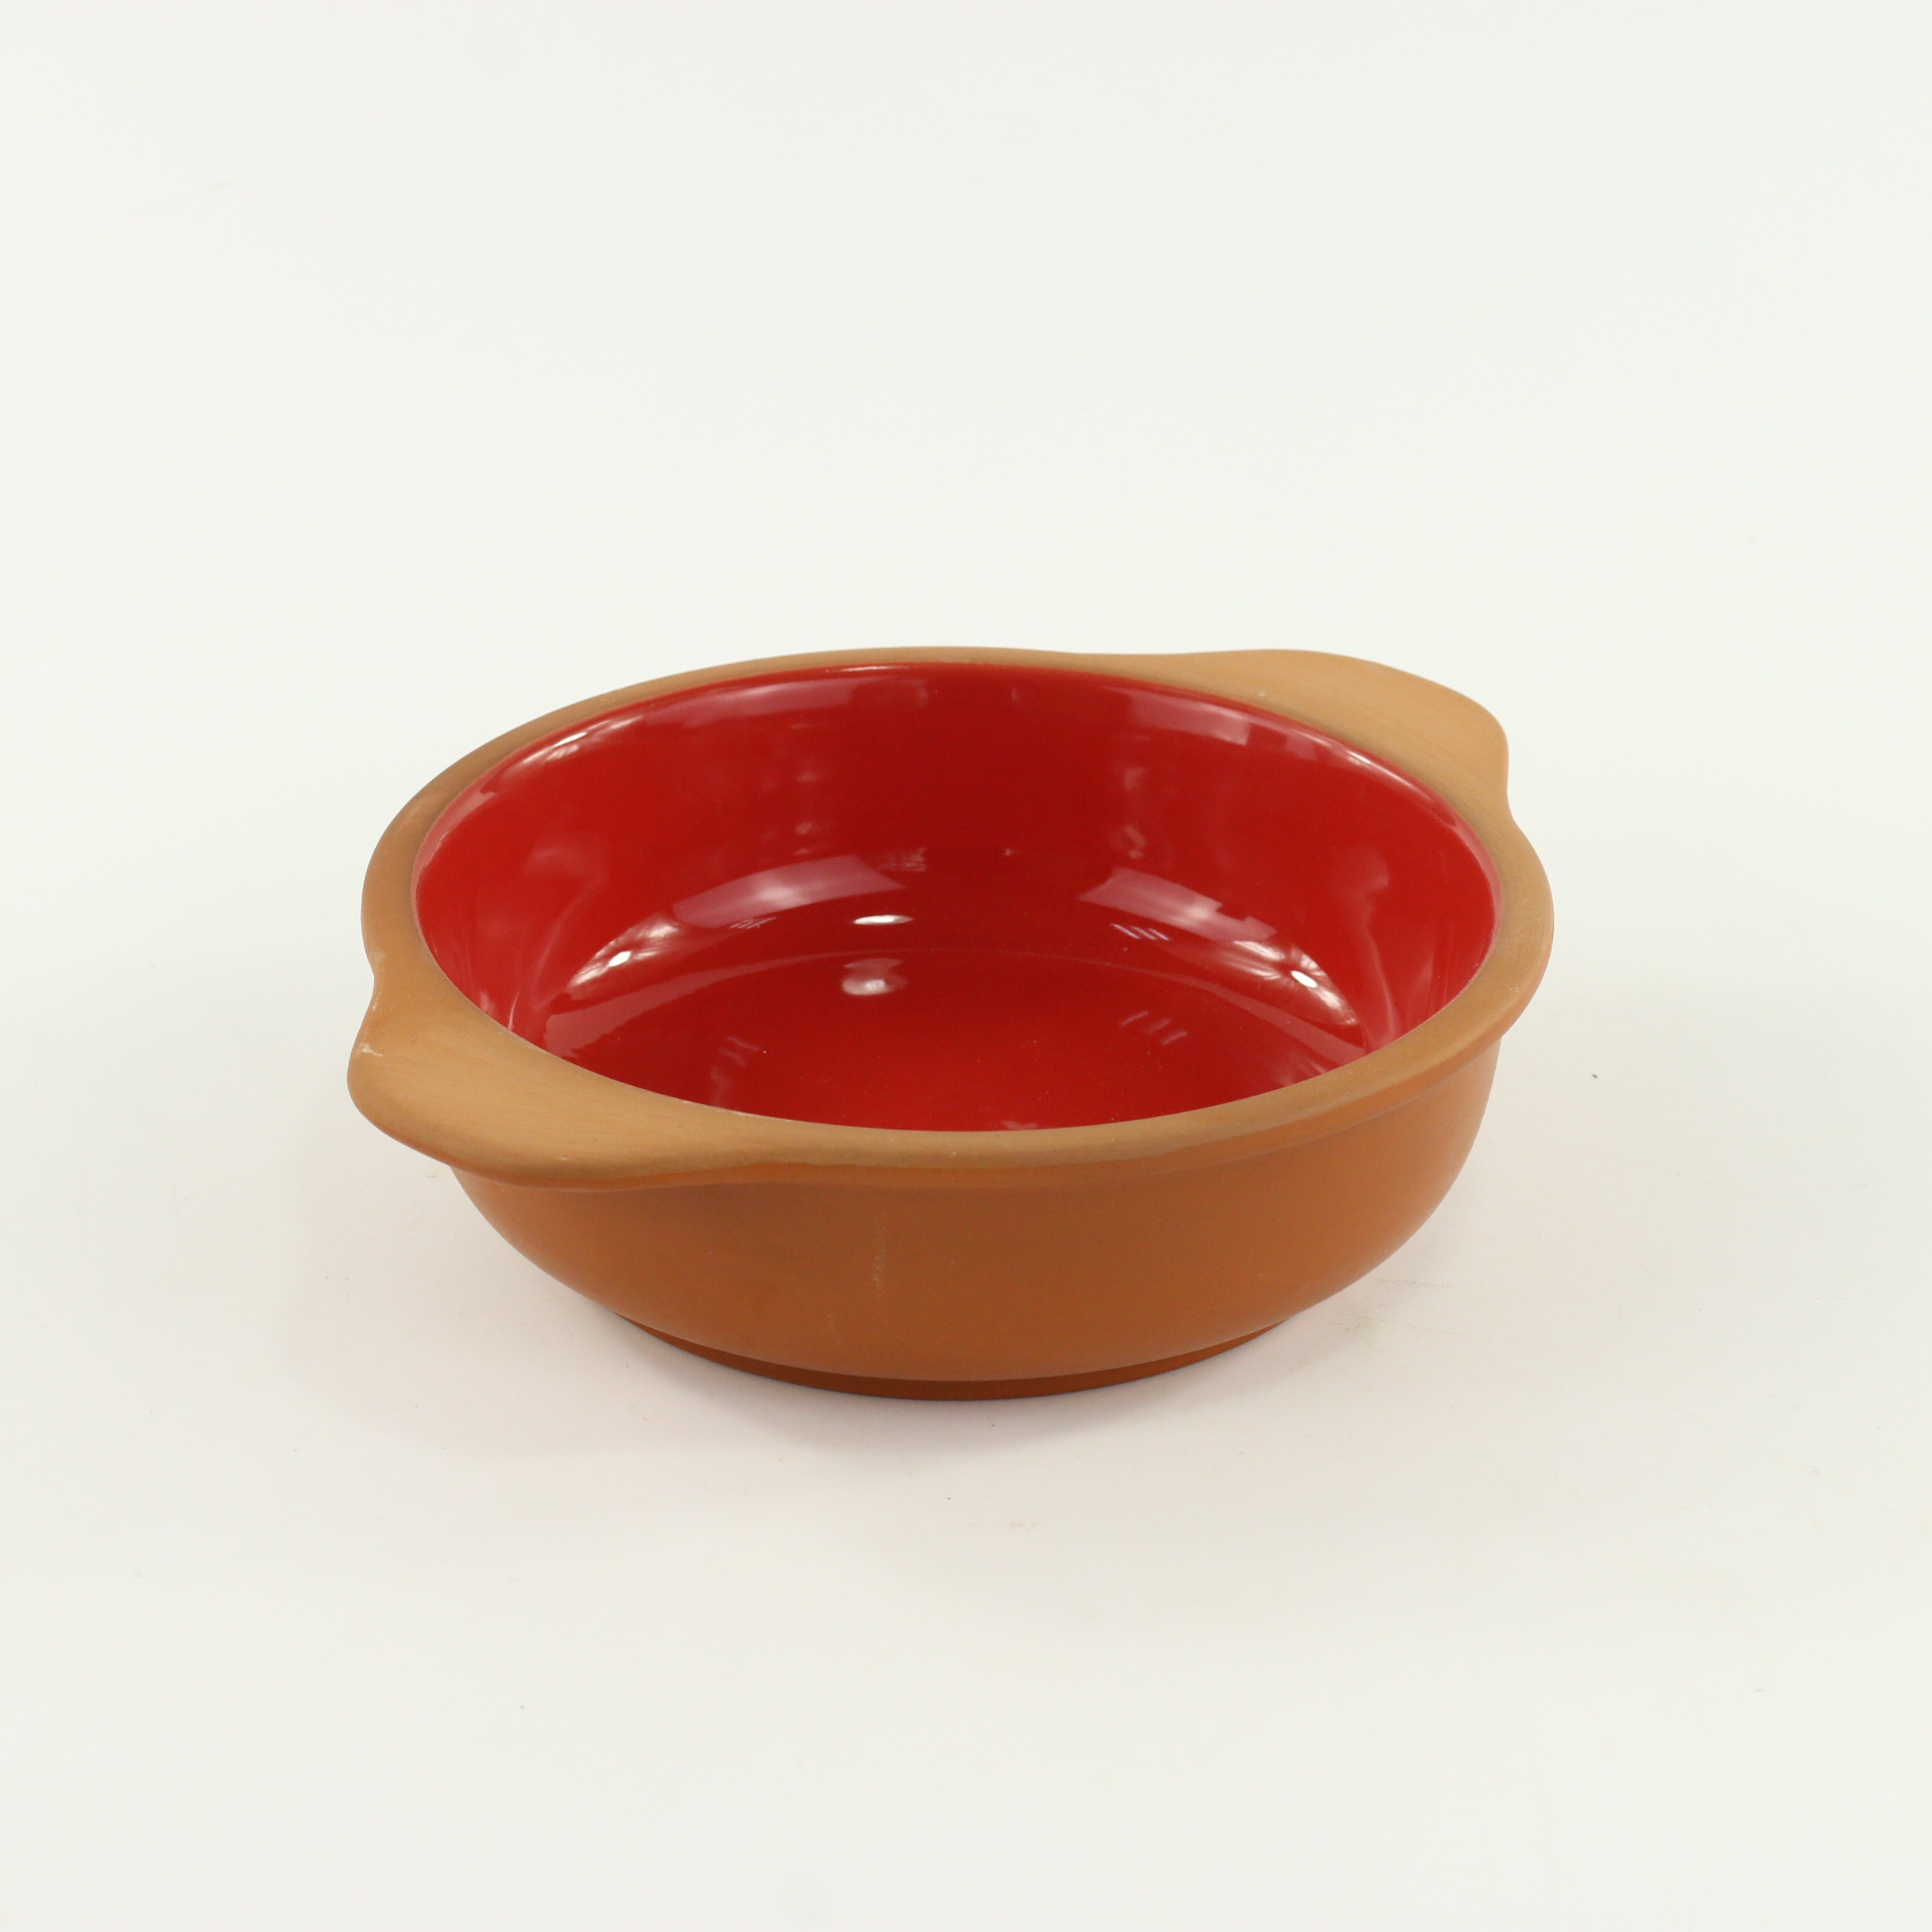 Terracotta Serving Dish Plate With Handles